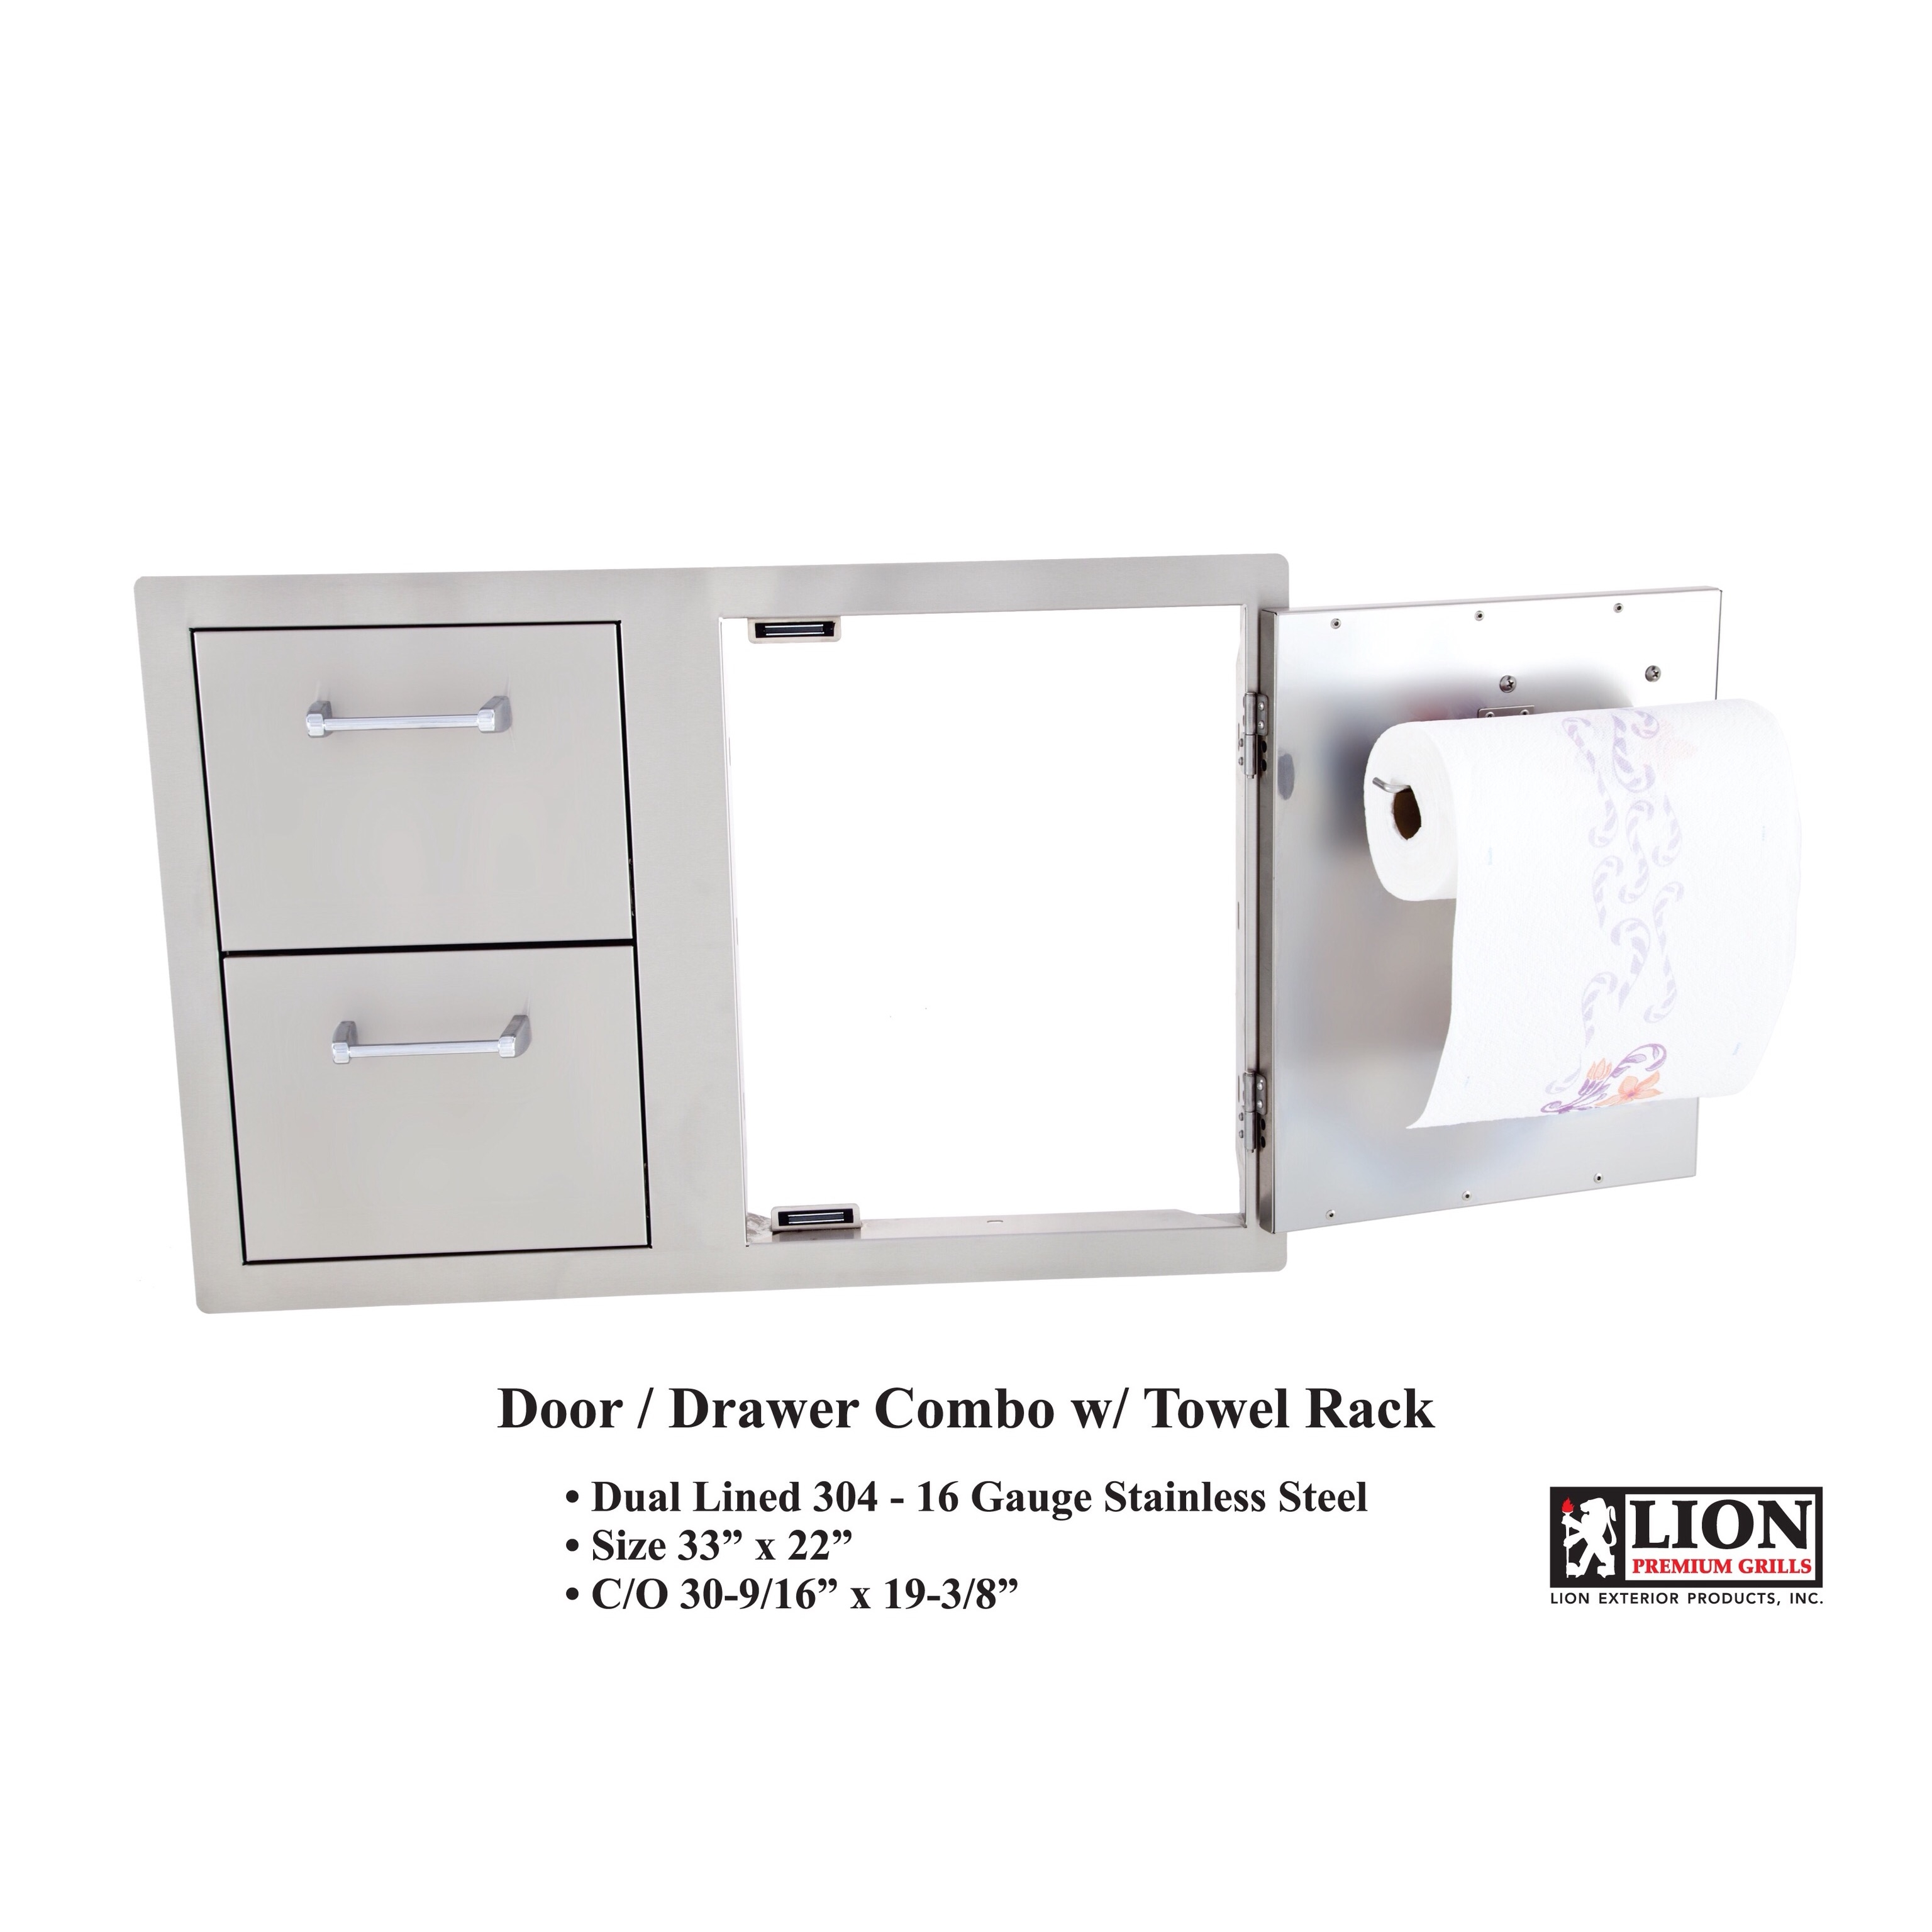 Door & Drawer Combo w/ Towel Rack